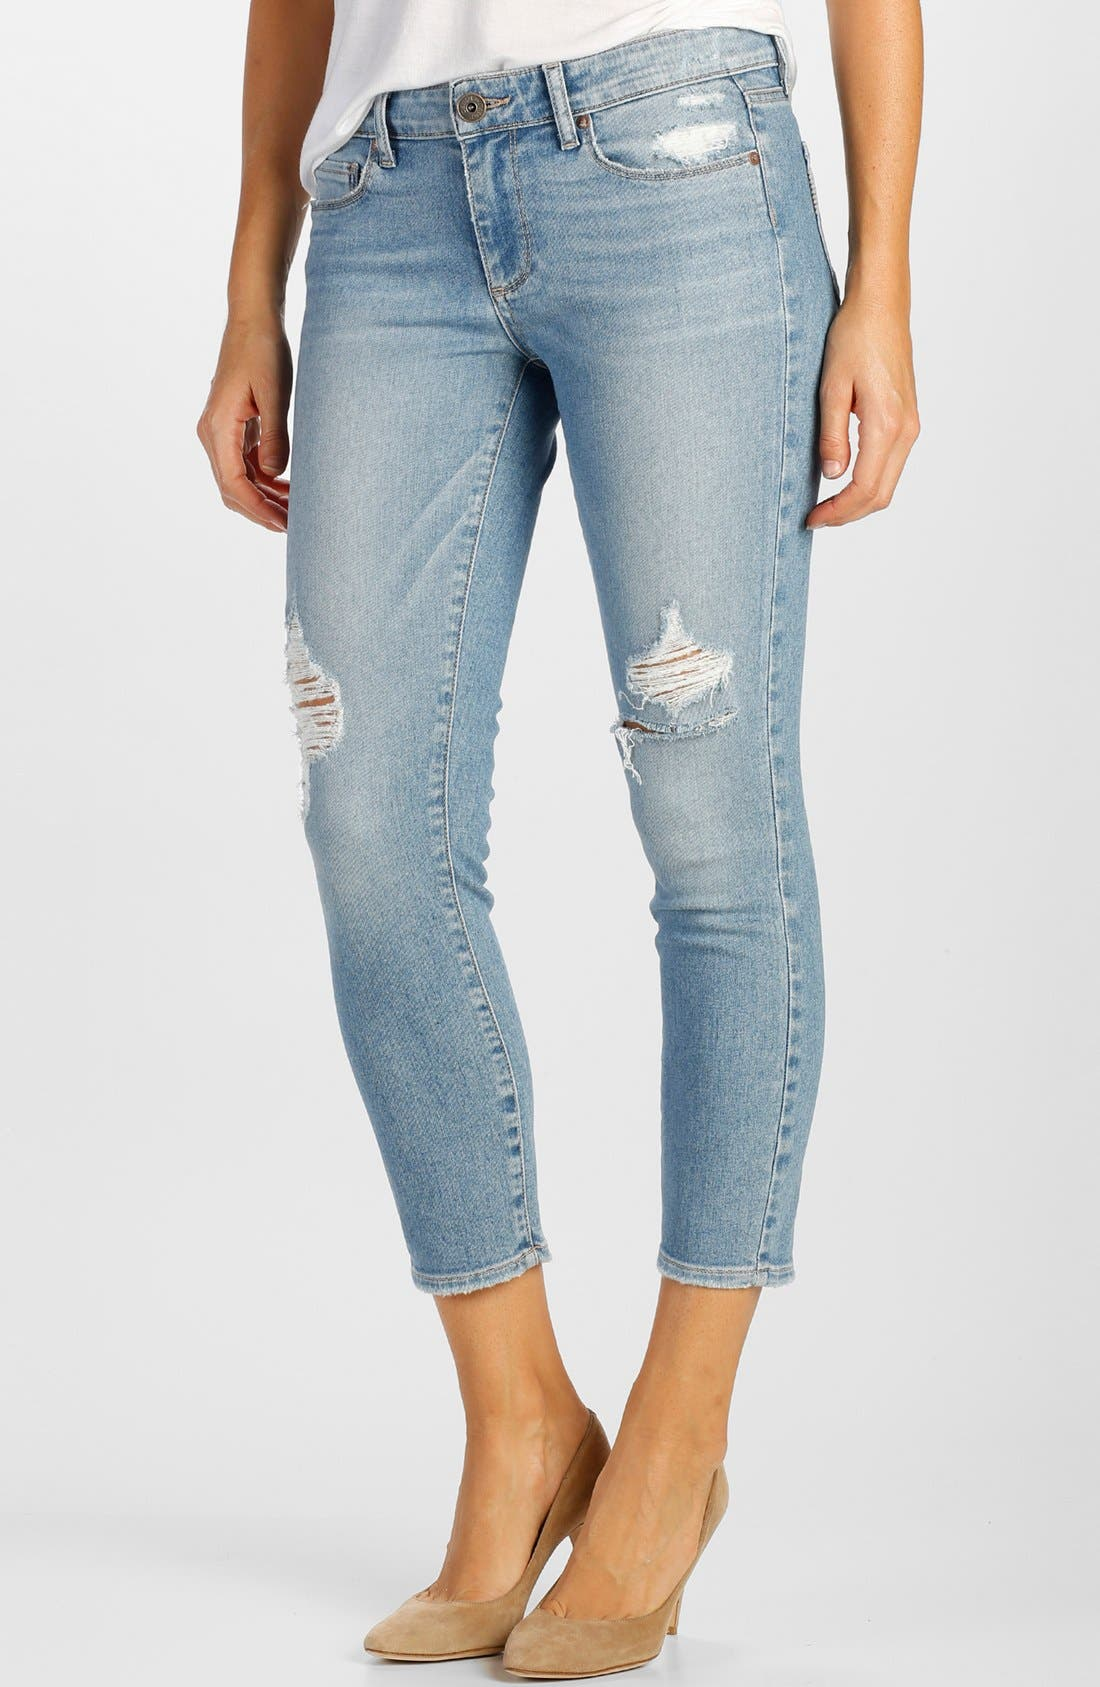 Main Image - Paige Denim 'Verdugo' Crop Skinny Jeans (Serena Destructed)